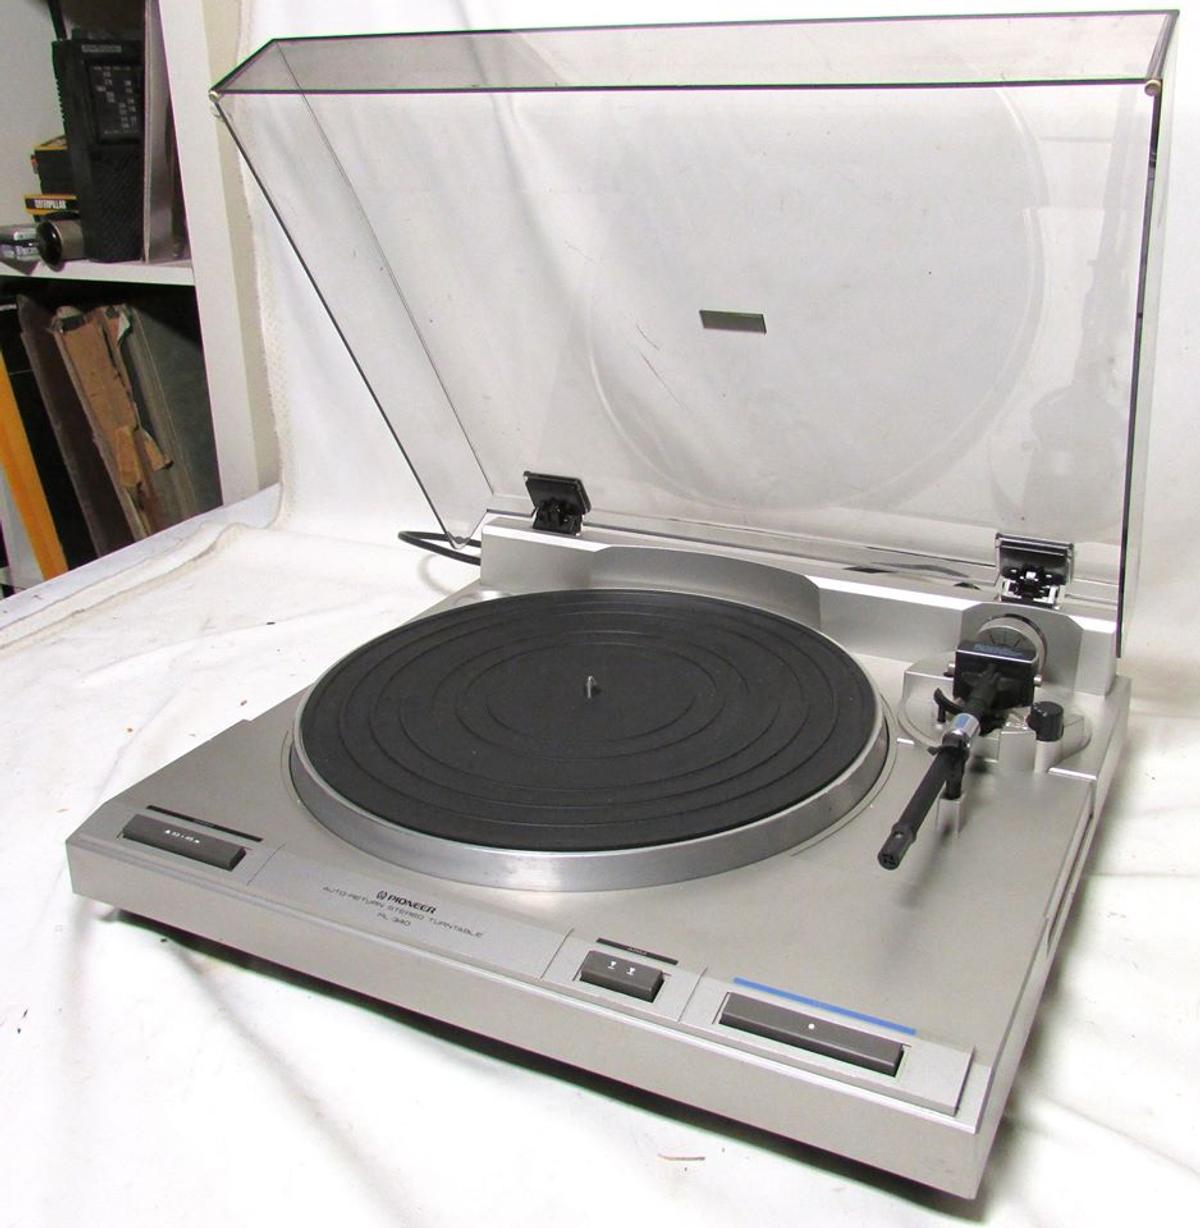 pioneer record player pl-340  full working order  needs needle cartridge  circa 1985  retro collectable record player